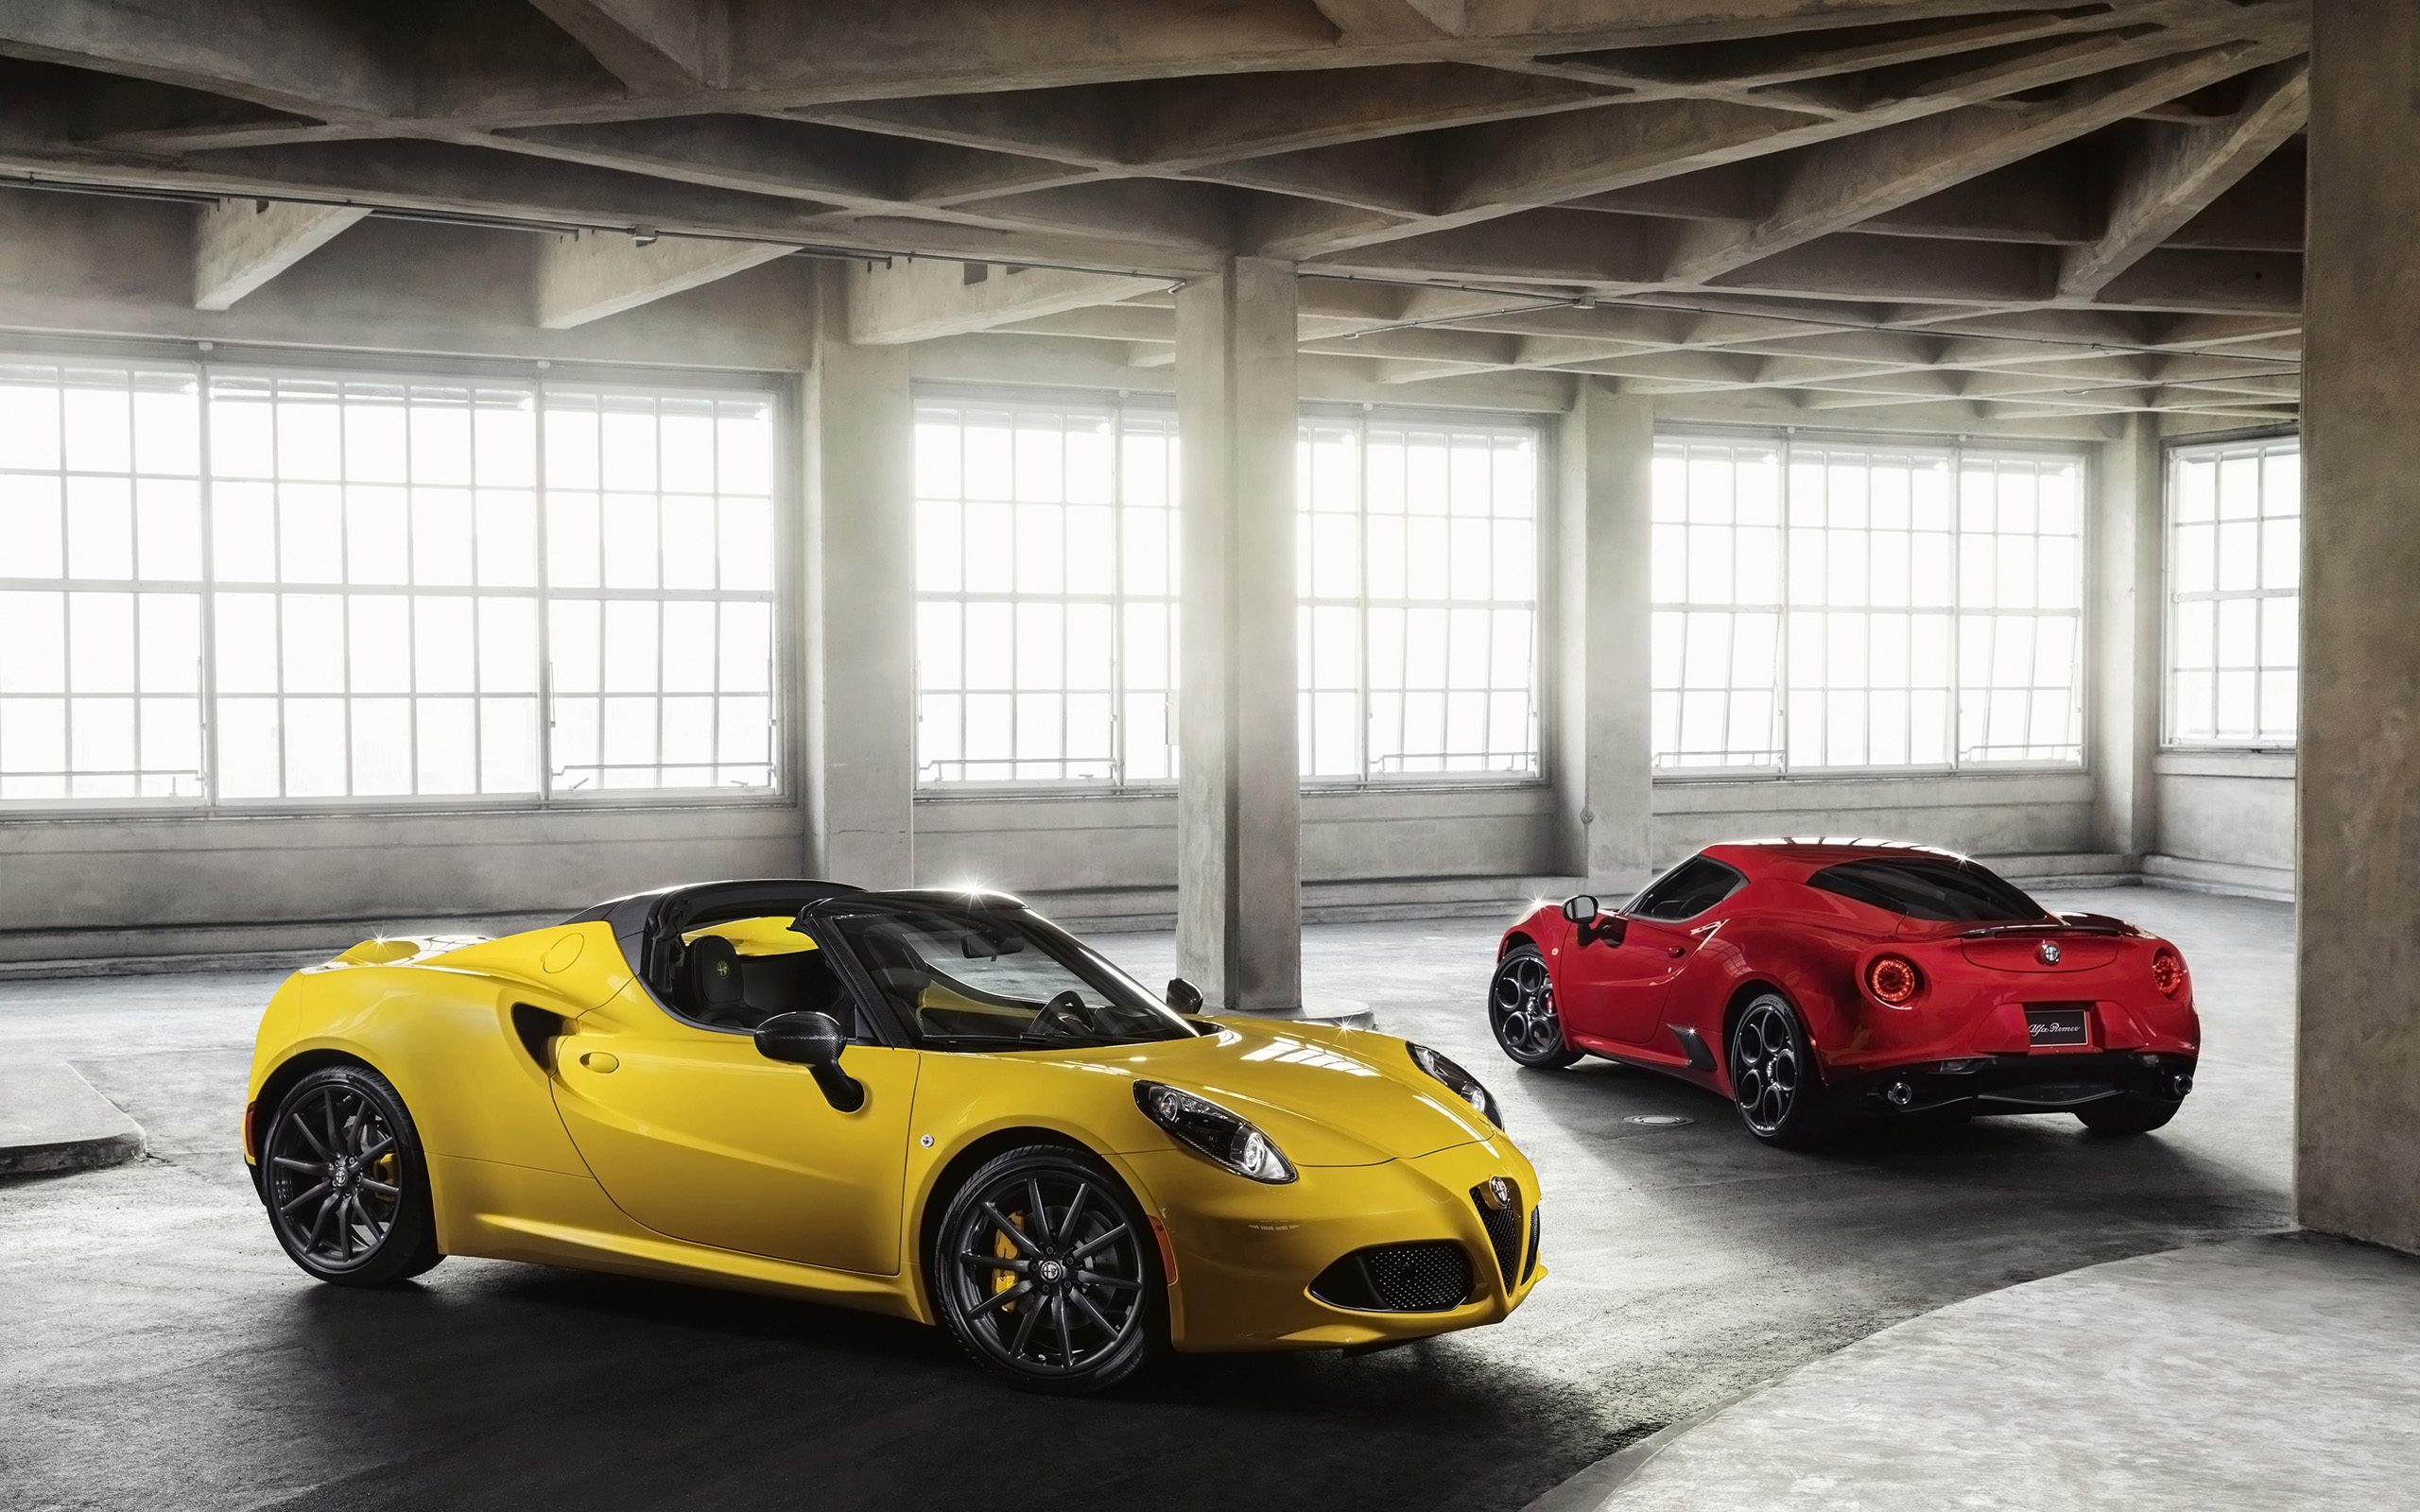 2015 alfa romeo 4c spider 2 wallpaper hd car wallpapers id 5039. Black Bedroom Furniture Sets. Home Design Ideas